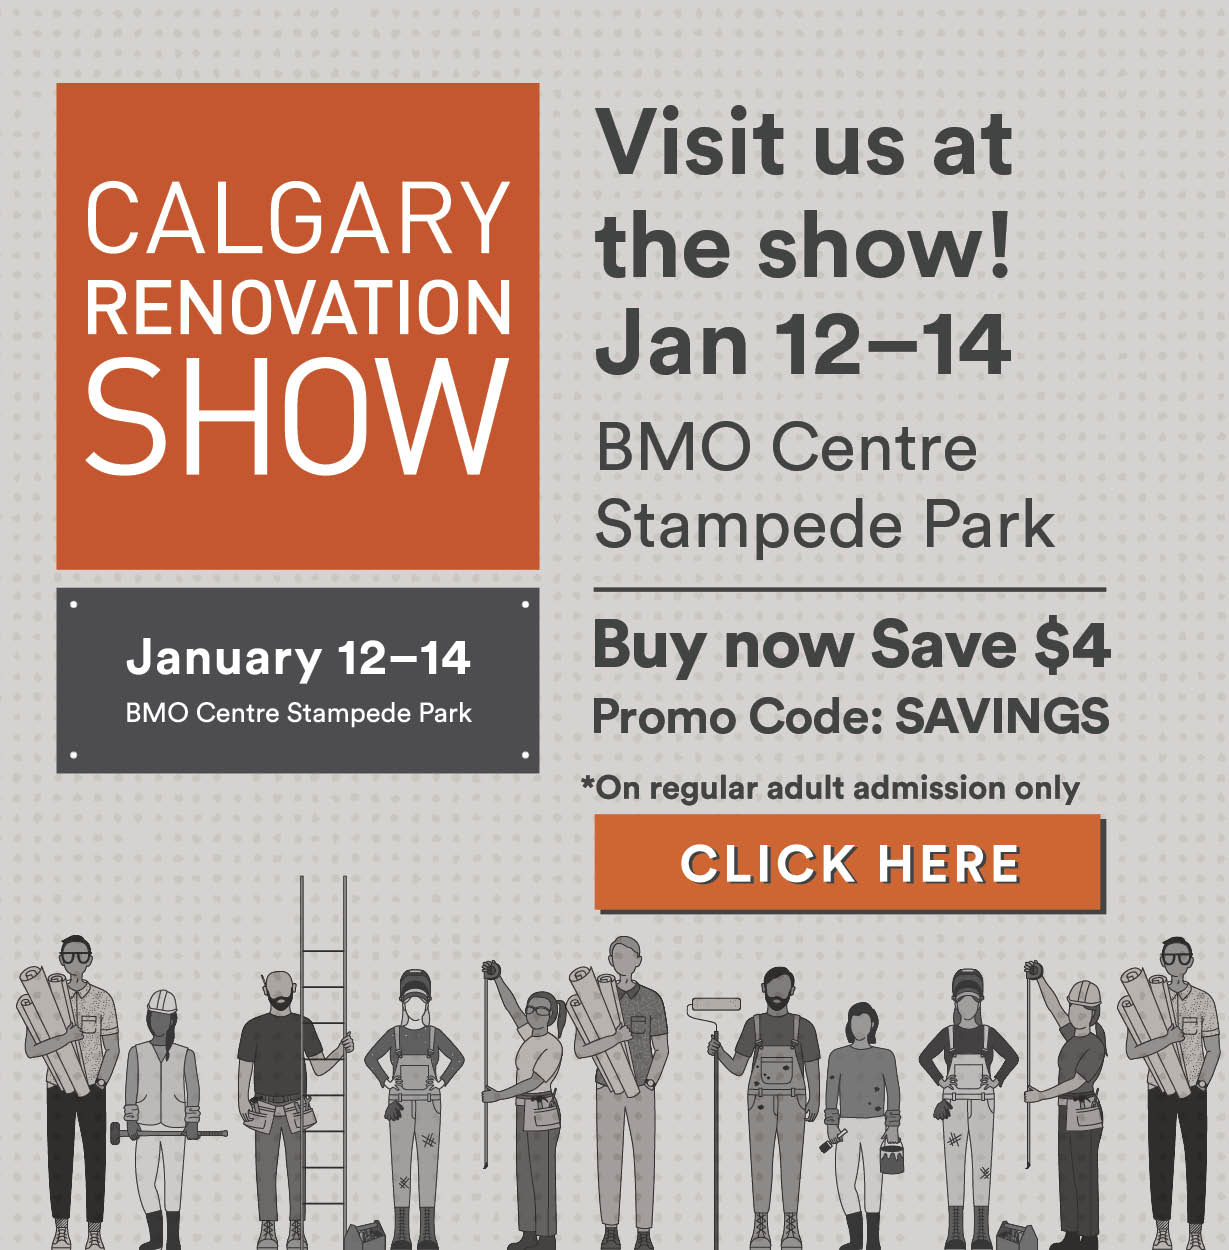 Calgary Renovation Show | Fire Ant Contracting